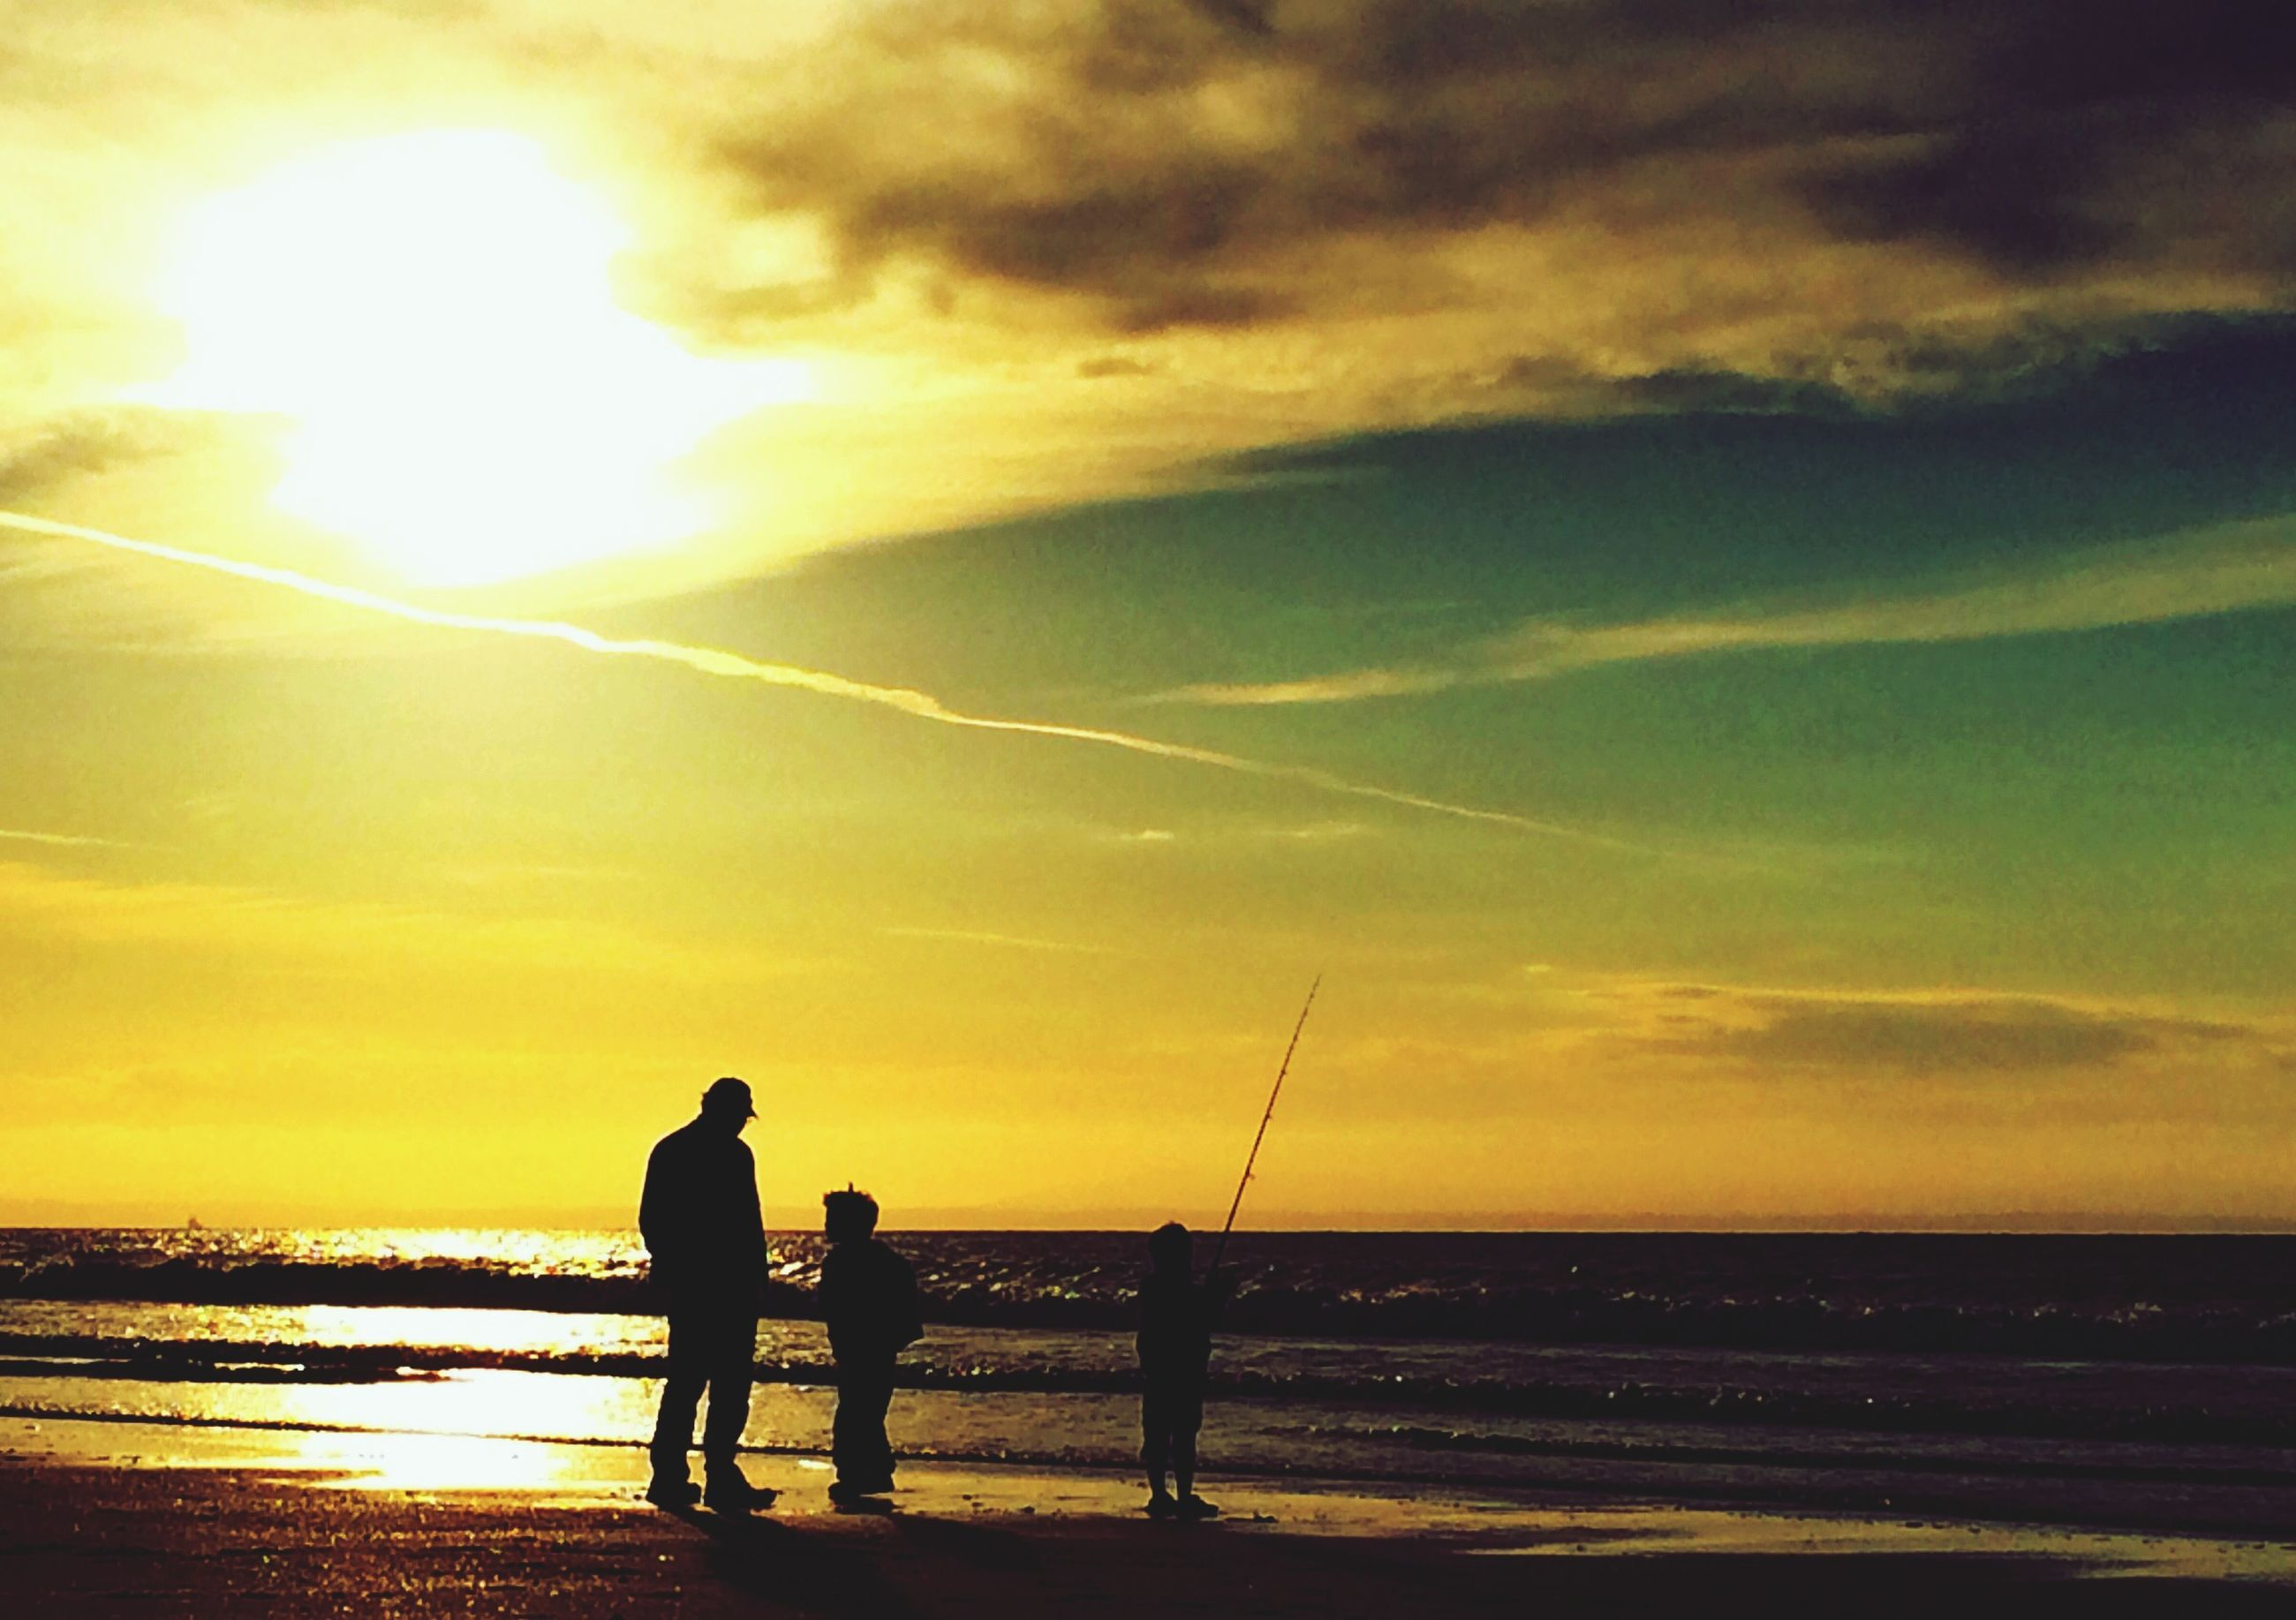 sunset, silhouette, sea, sun, water, horizon over water, sky, orange color, leisure activity, scenics, lifestyles, beauty in nature, men, beach, tranquility, tranquil scene, cloud - sky, nature